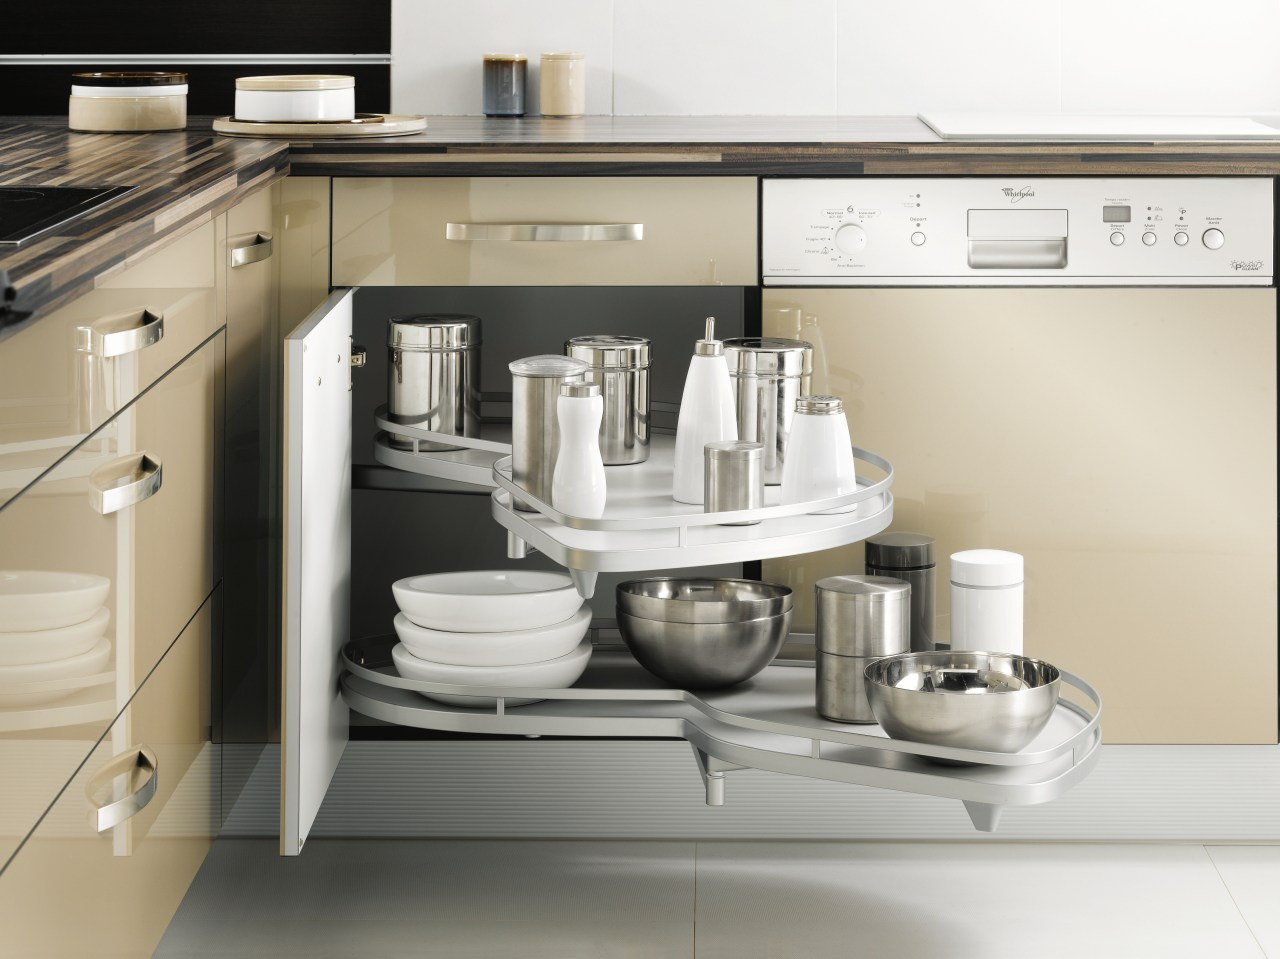 Good taste  Bold, daring designs emphasising vibrant countertop, furniture, home appliance, kitchen, kitchen appliance, kitchen stove, product design, sink, small appliance, tap, white